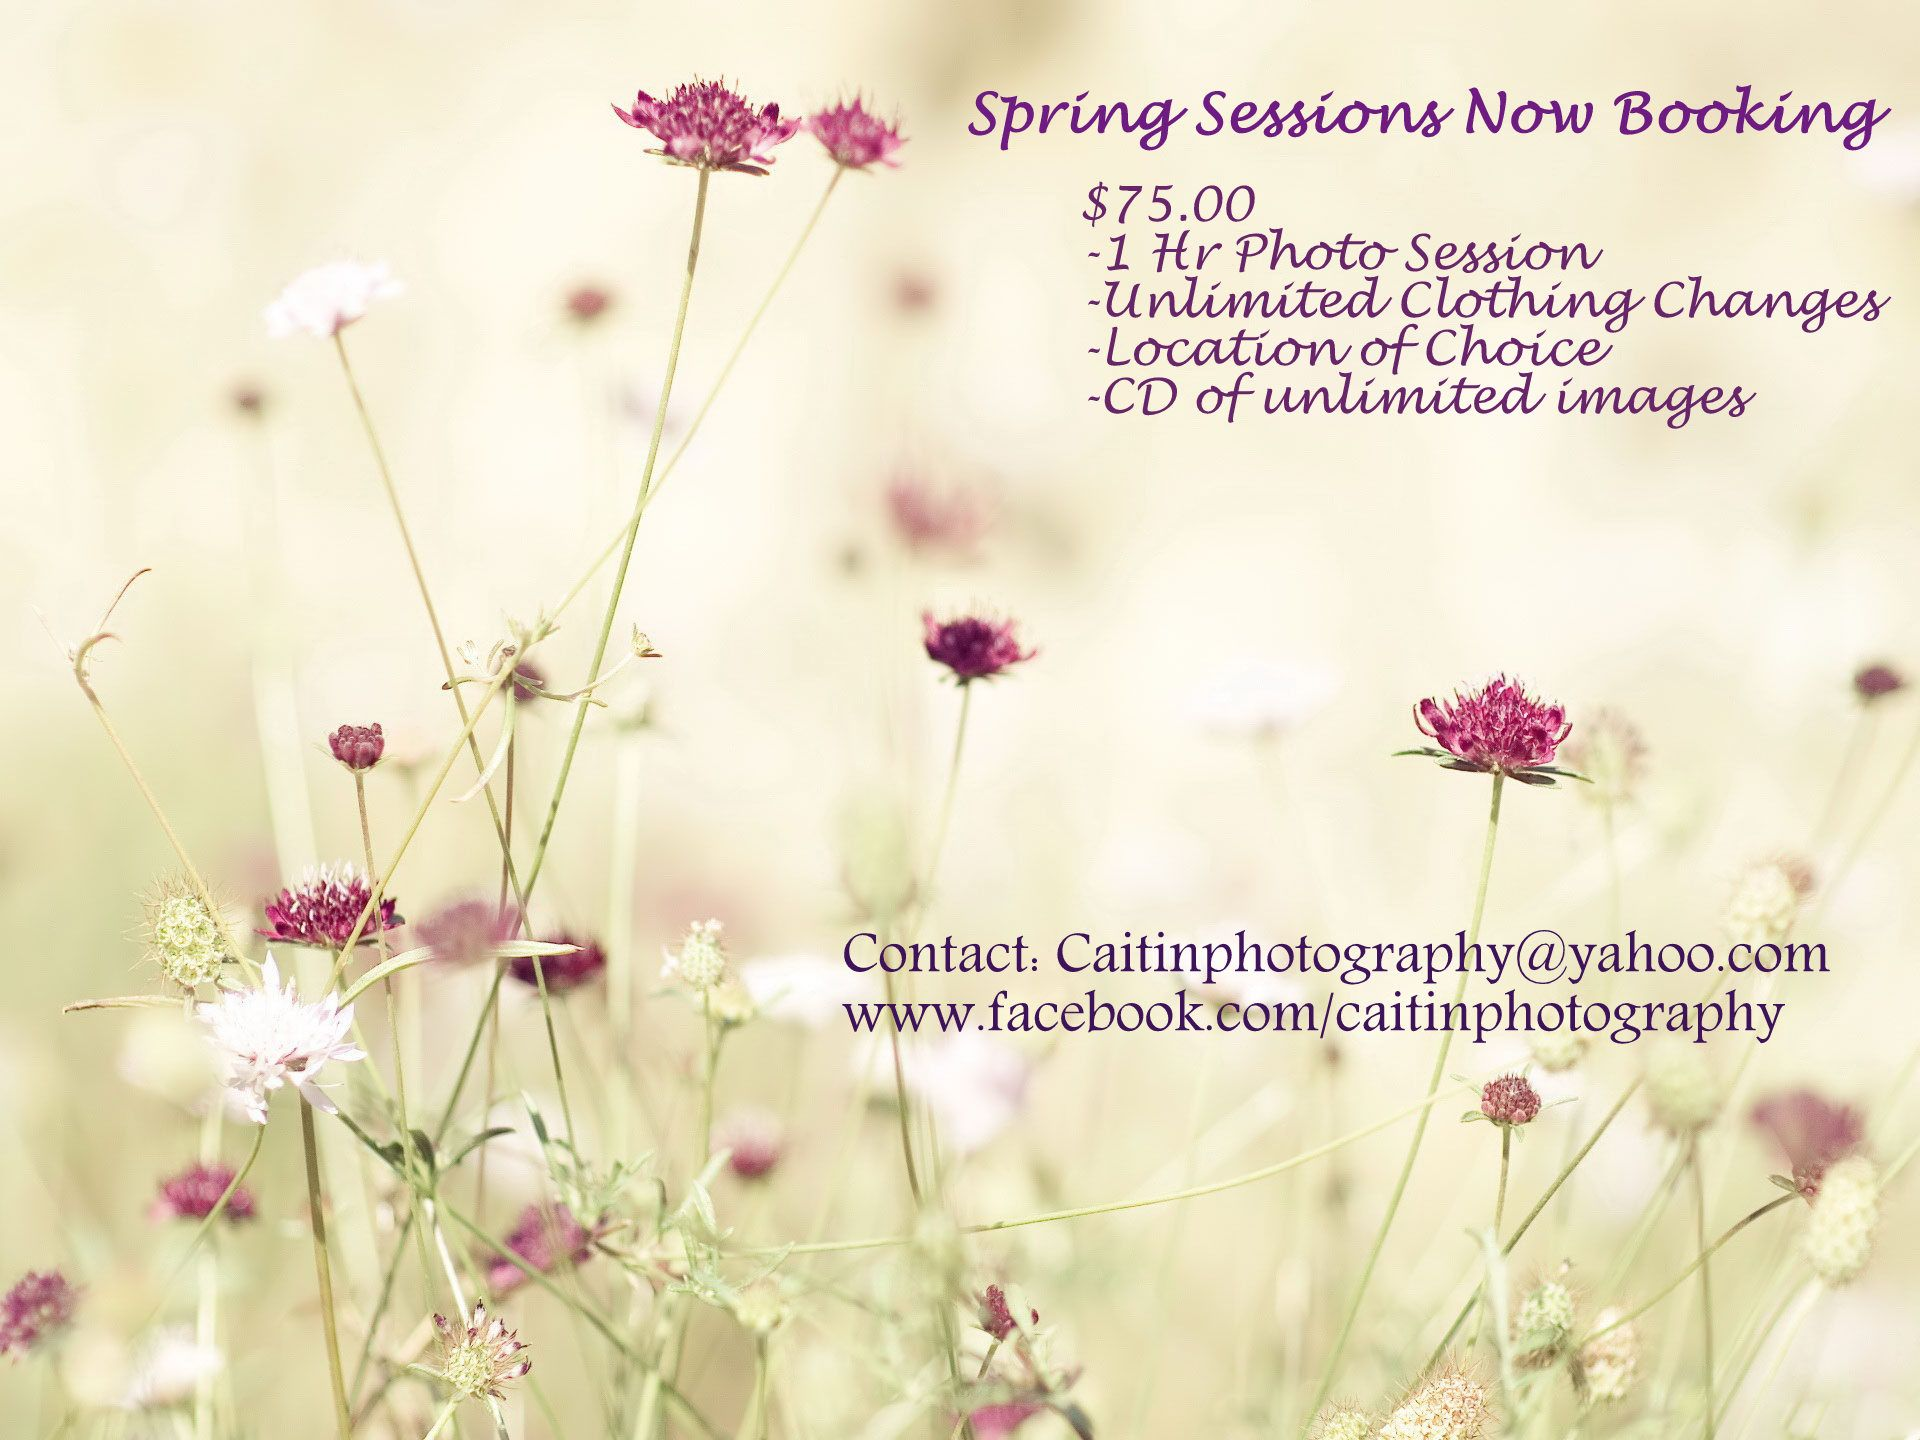 Book your session introductory prices are for a limited